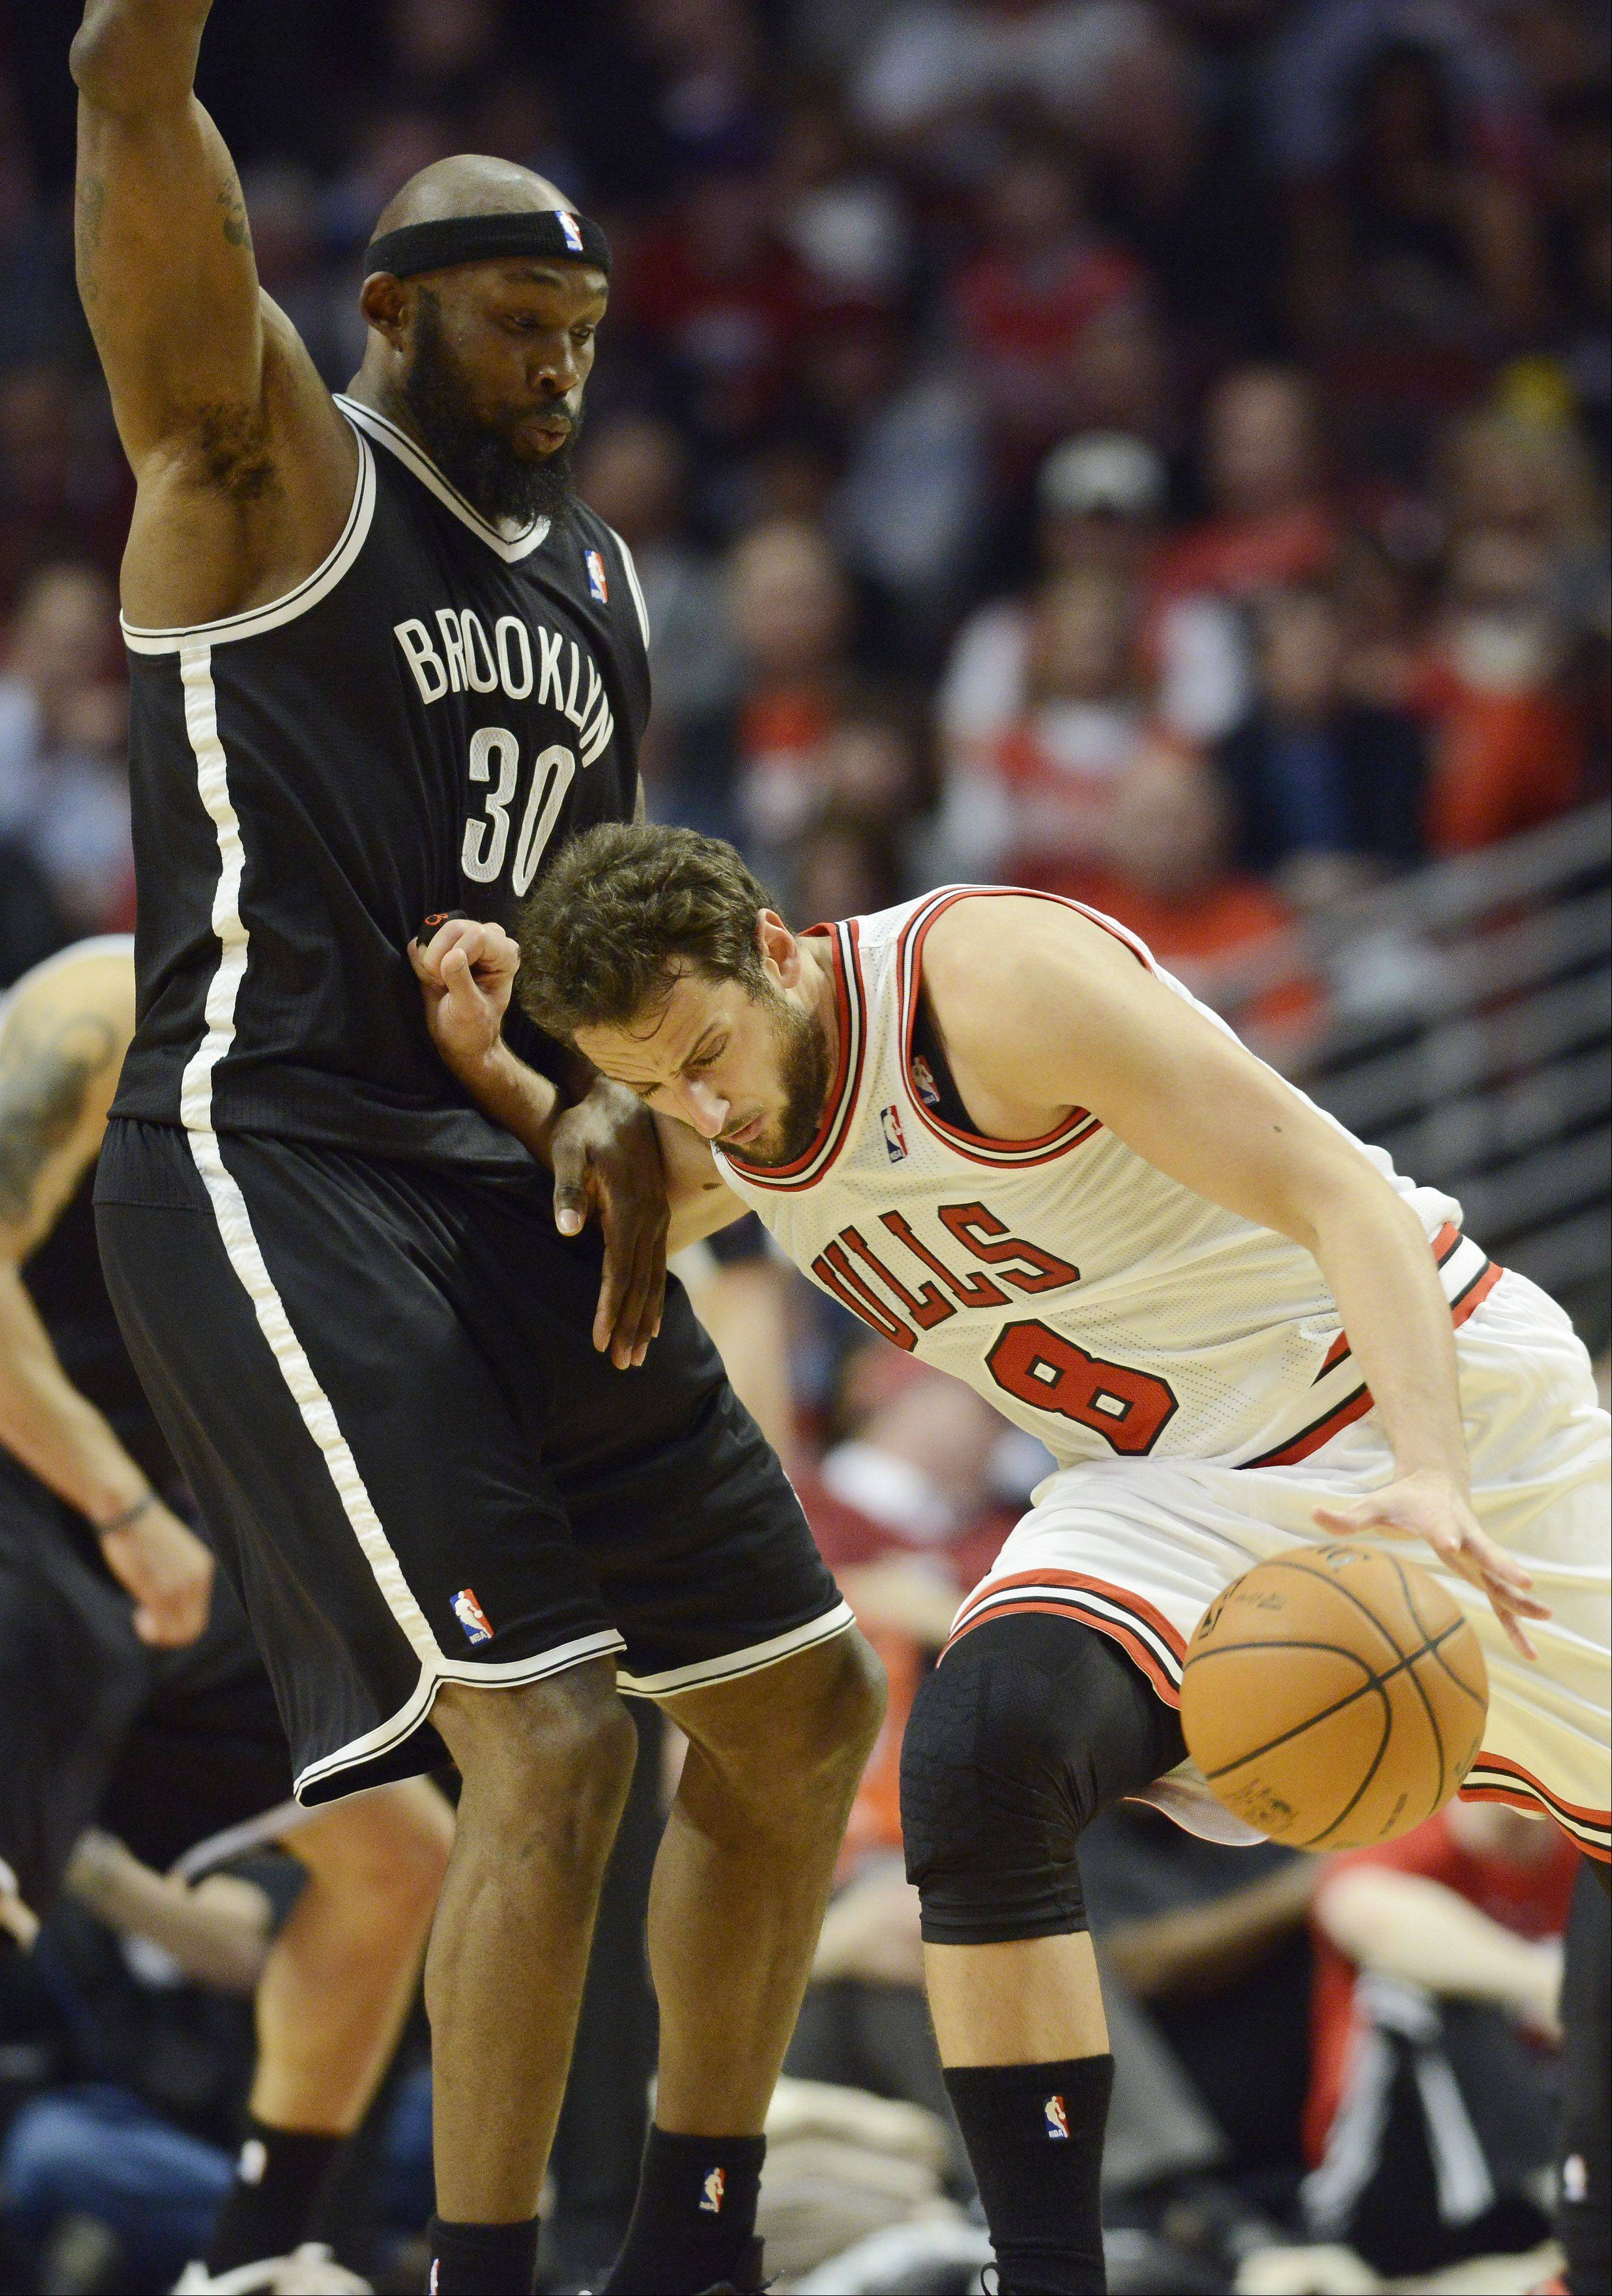 JOE LEWNARD/jlewnard@dailyherald.comMarco Belinelli of the Chicago Bulls gets called for an offensive could against Reggie Evans of the Brooklyn Nets in Game 6 of the first round playoff game at the United Center in Chicago, Thursday, May 2, 2013.